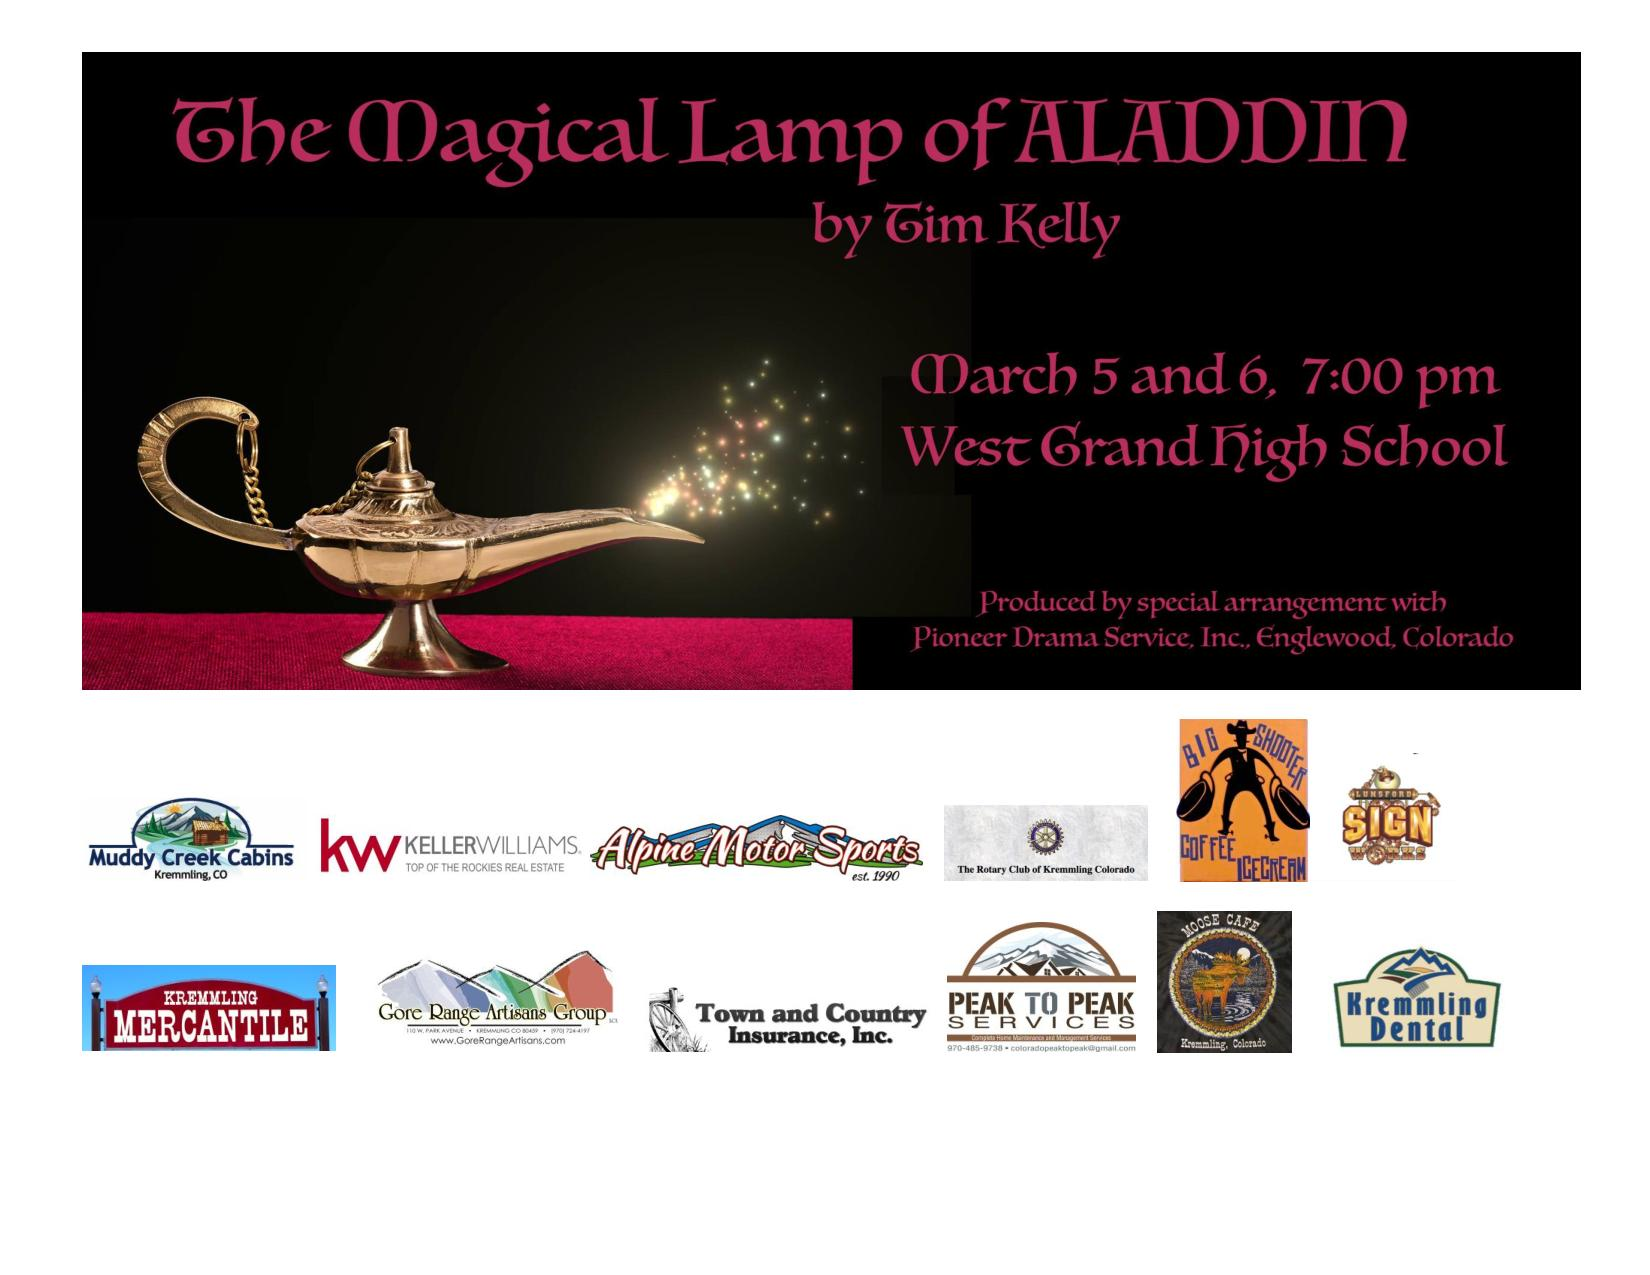 The Magical Lamp of Aladdin